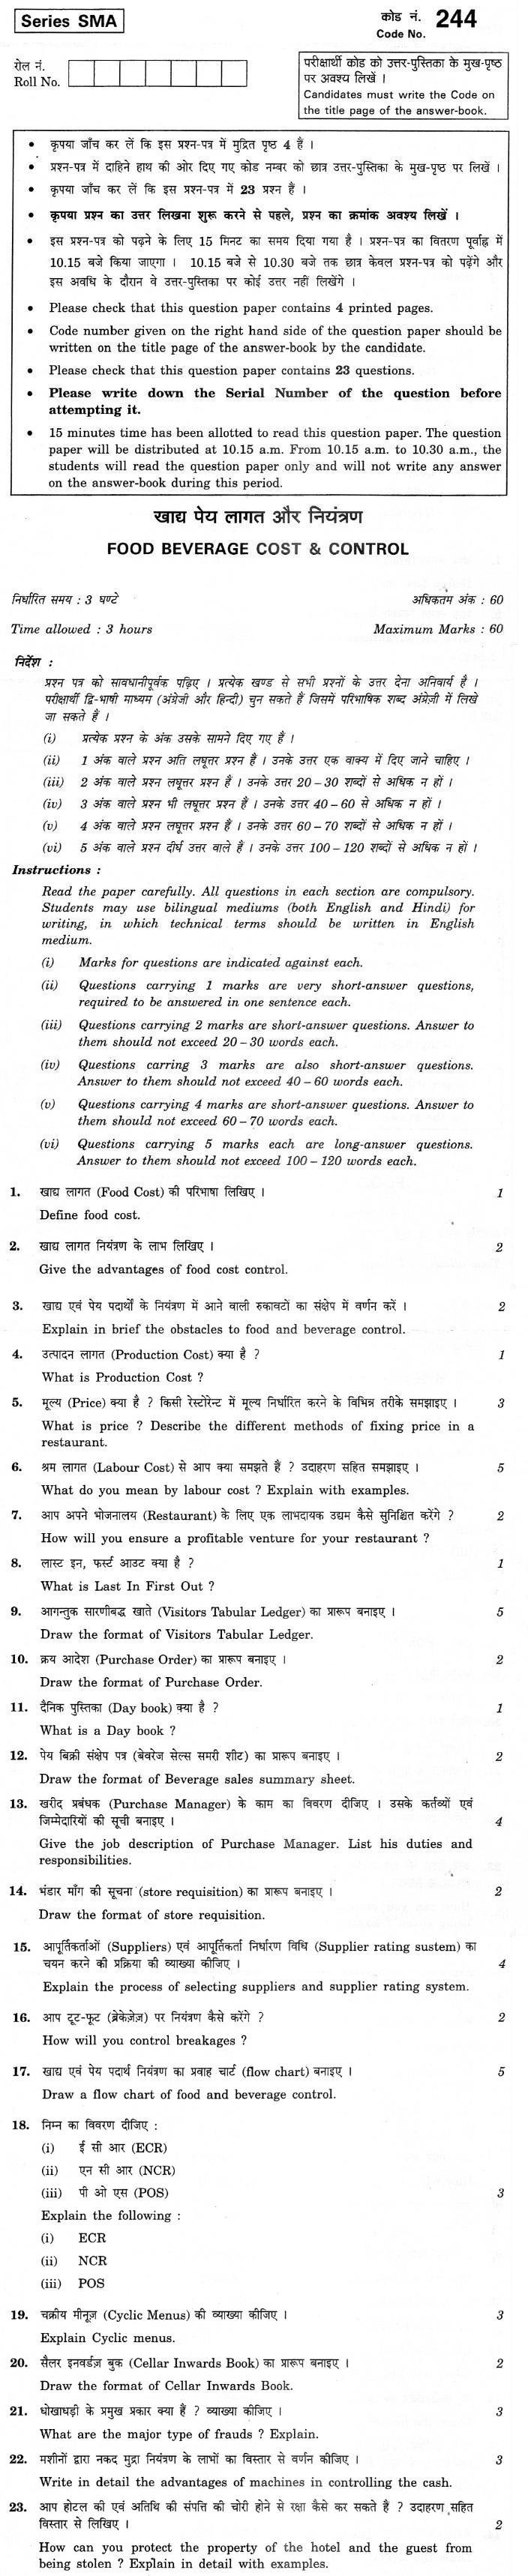 CBSE Class XII Previous Year Question Paper 2012 Food and Beverage Services II